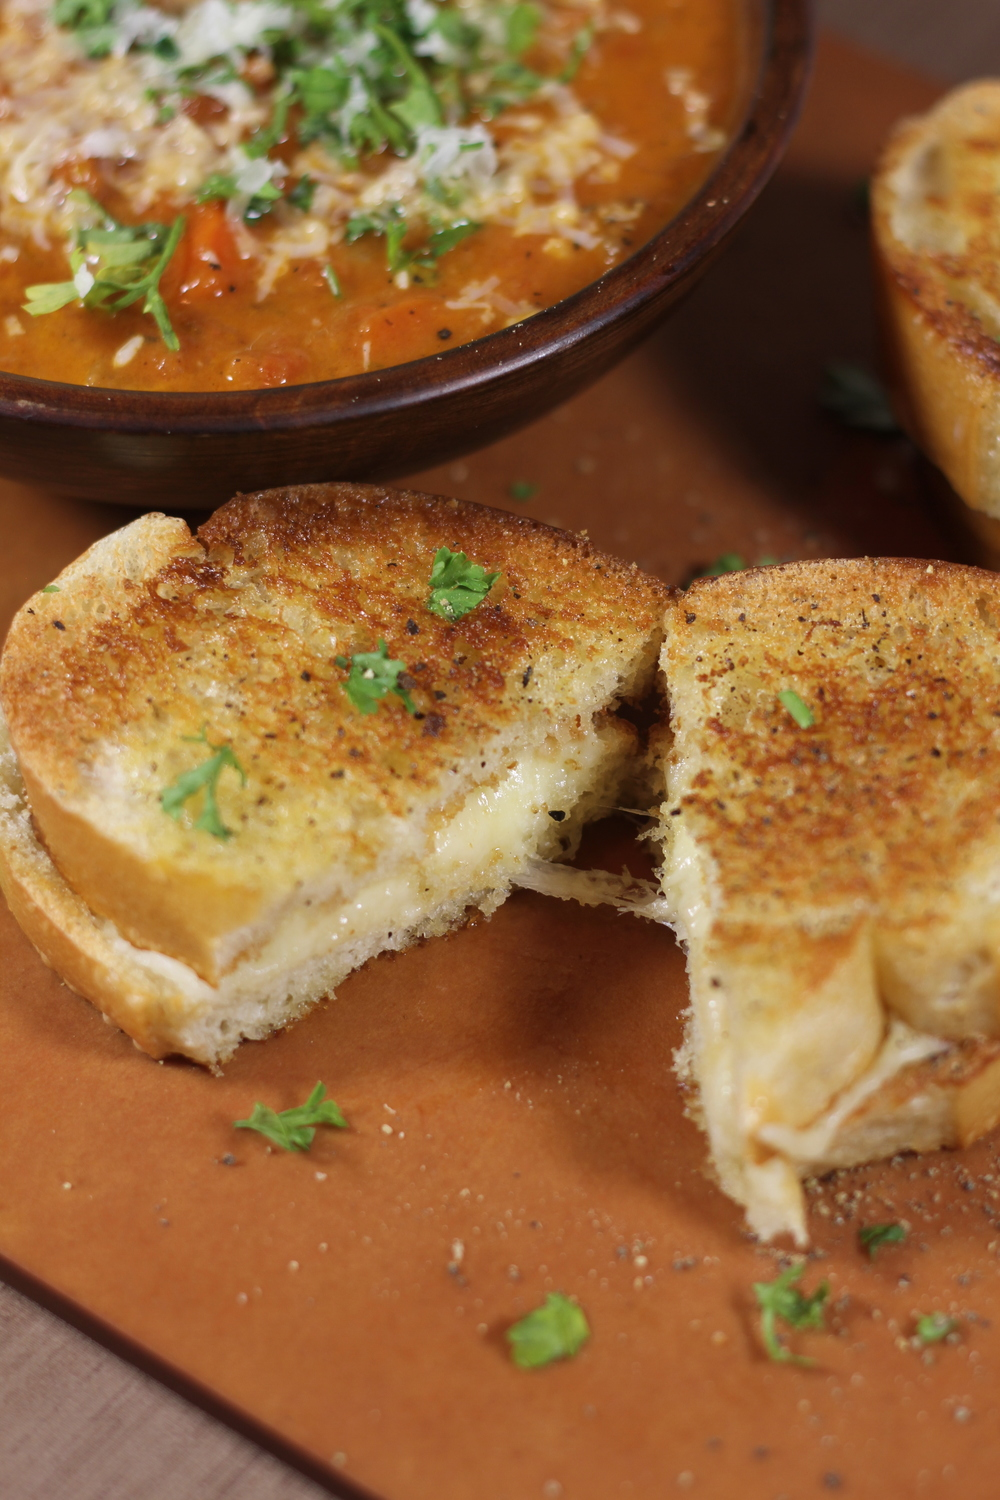 Classic Grilled Cheese and Homemade Tomato Soup